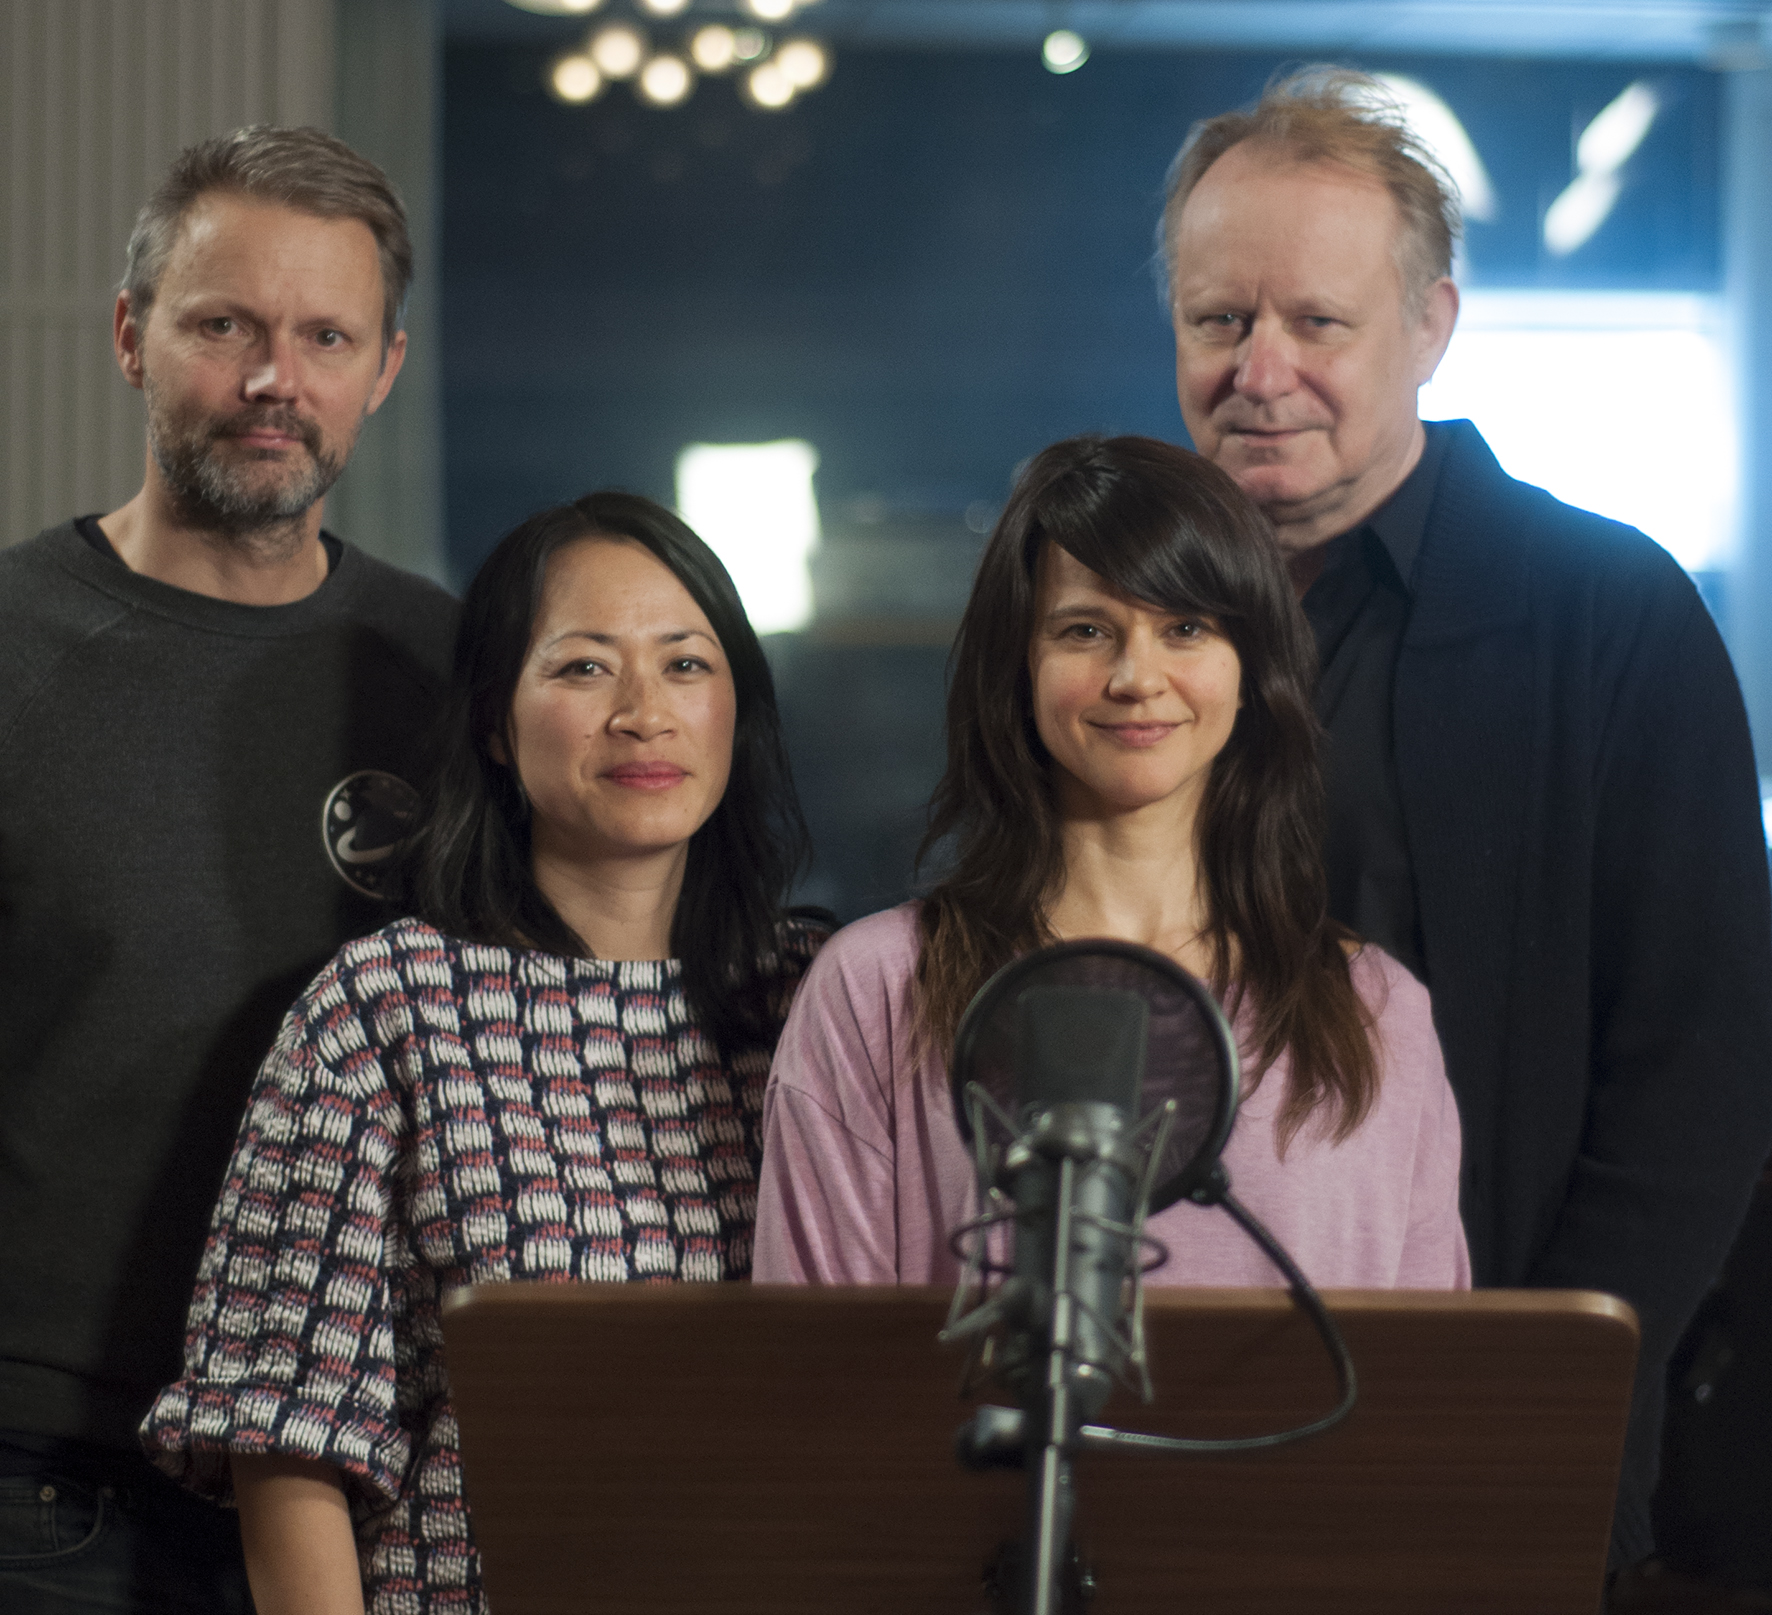 Stellan Skarsgård, Melinda Kinnaman och Felix Herngren will do the main characters in Linda Hambäcks new feature GORDON AND PADDY!